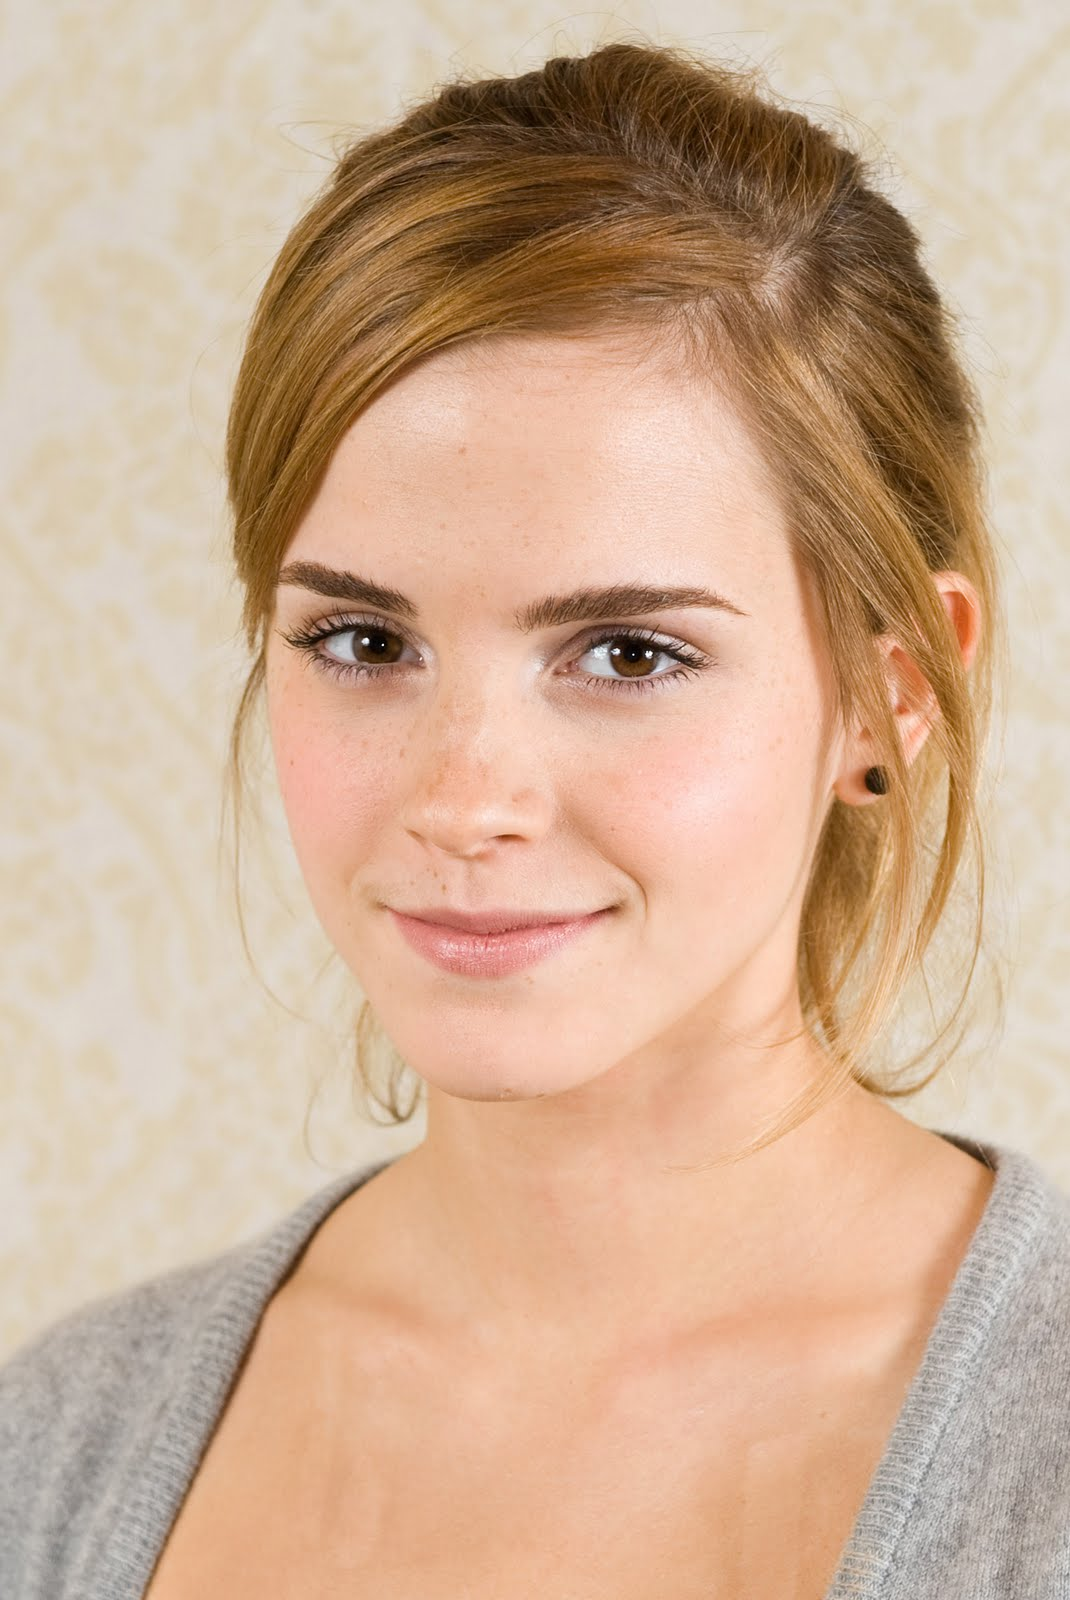 sorcerers emma watson week counting down to the premire